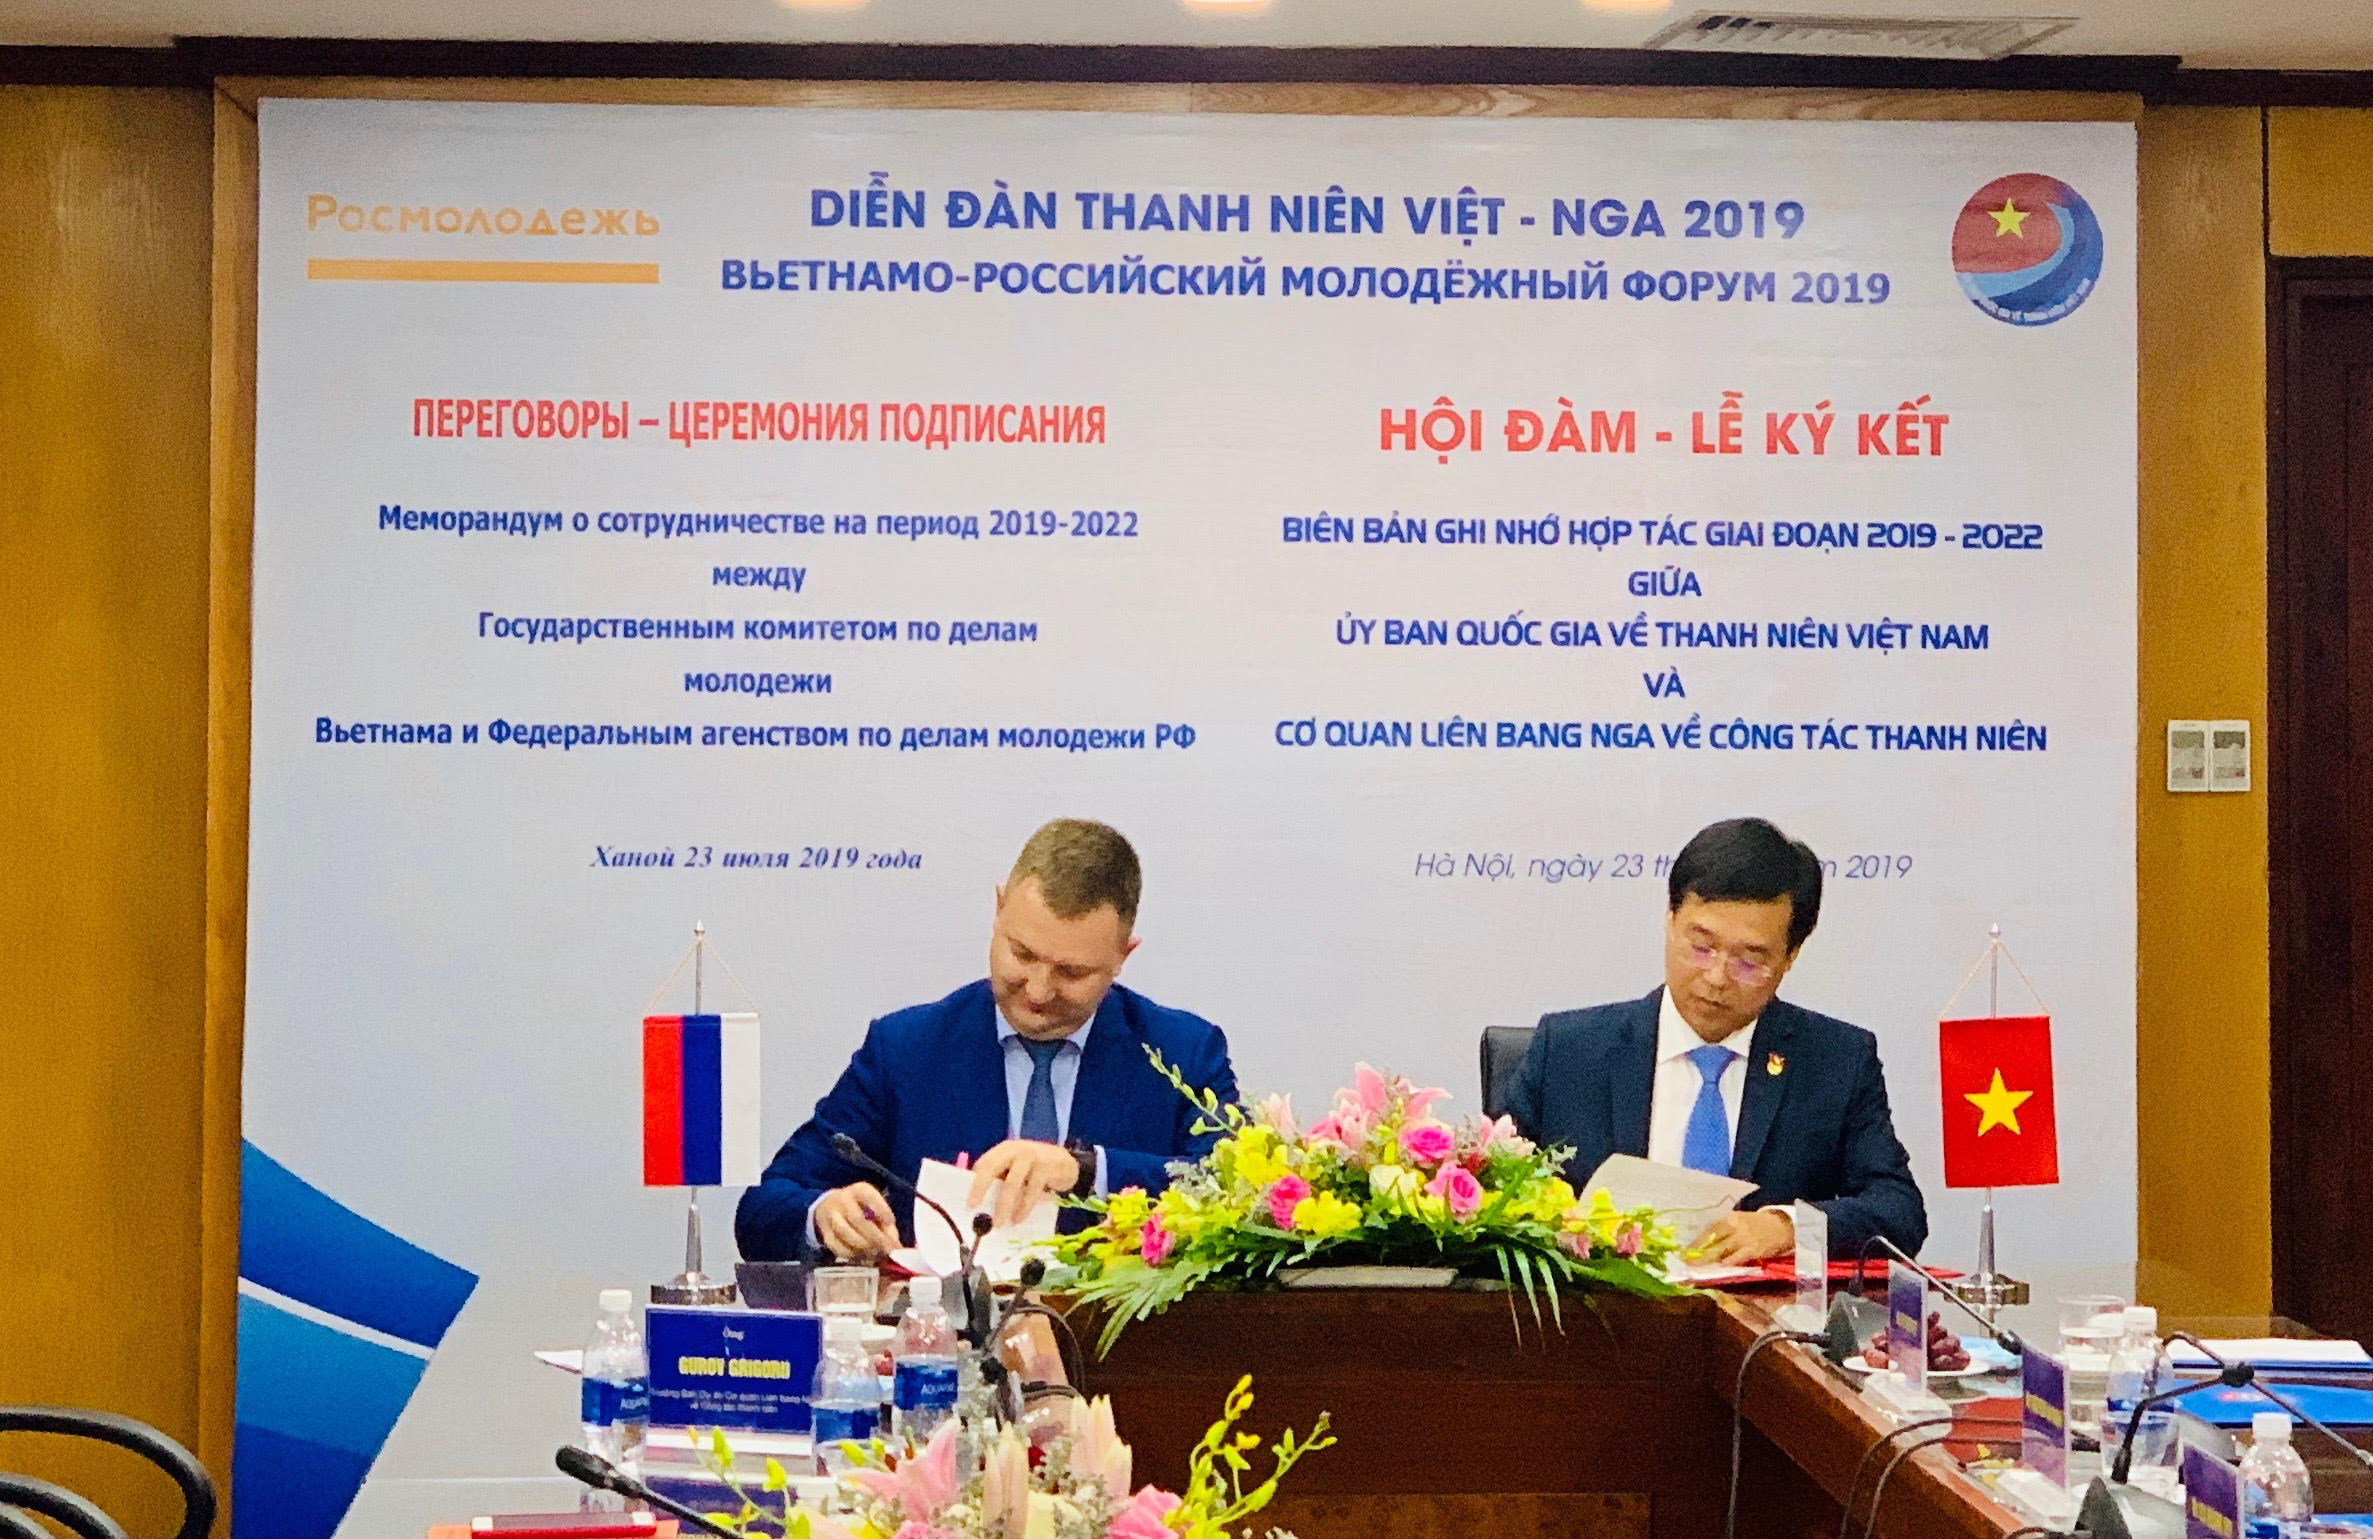 Mr. Le Quoc Phong and Mr. Alexandre Bugayev signing the MOU